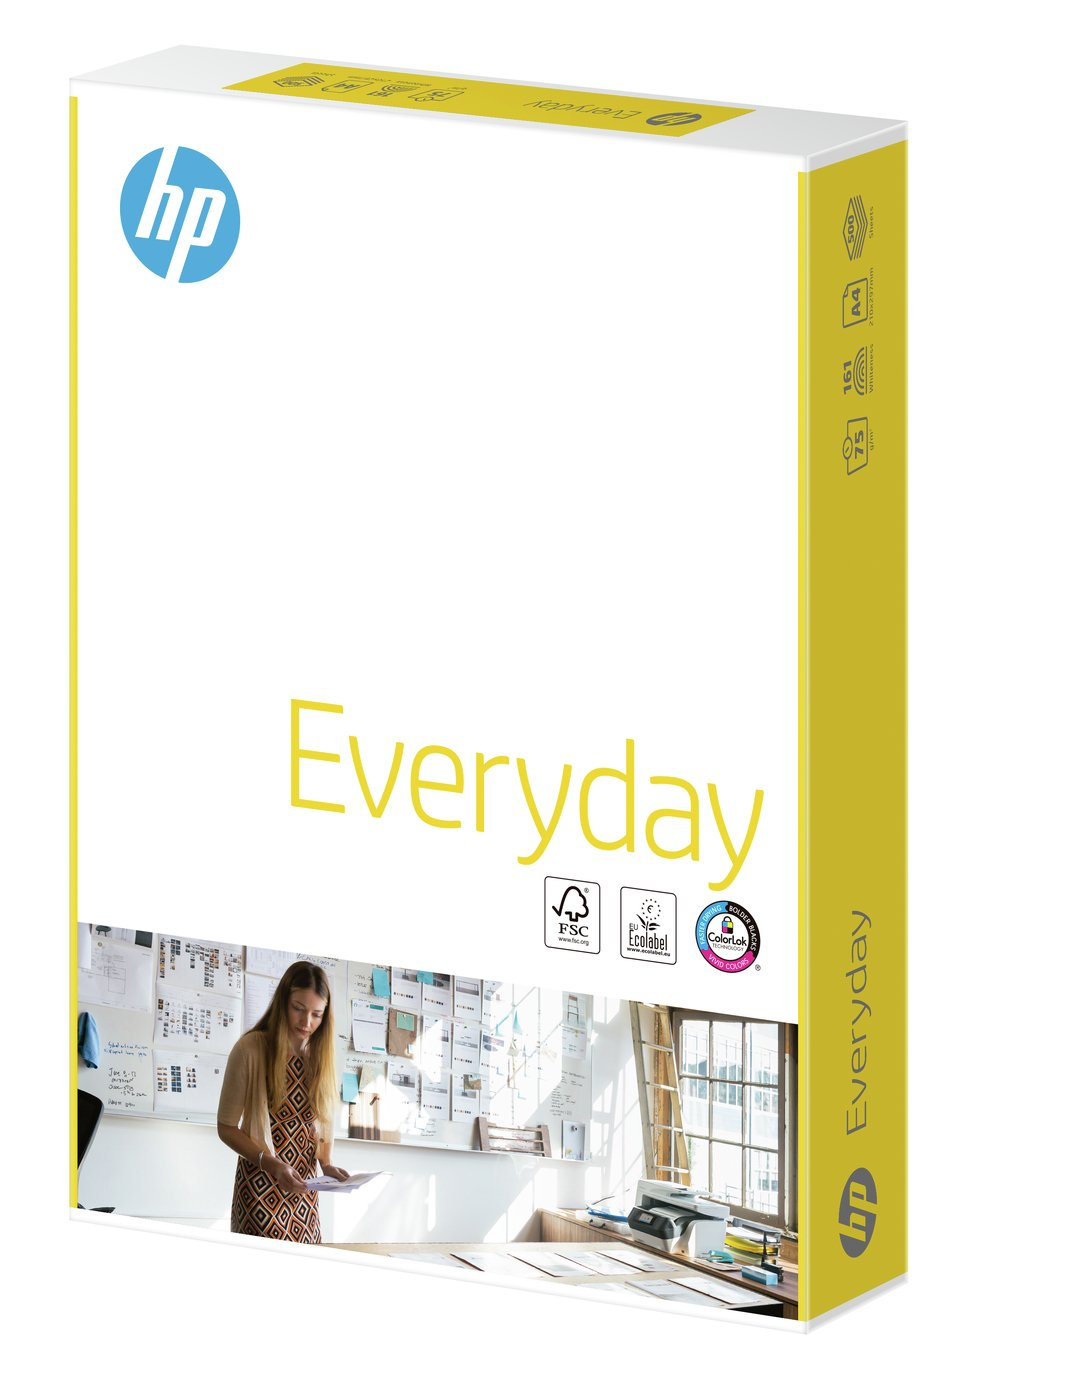 HP Everyday A4 Printer Paper - 500 Sheets